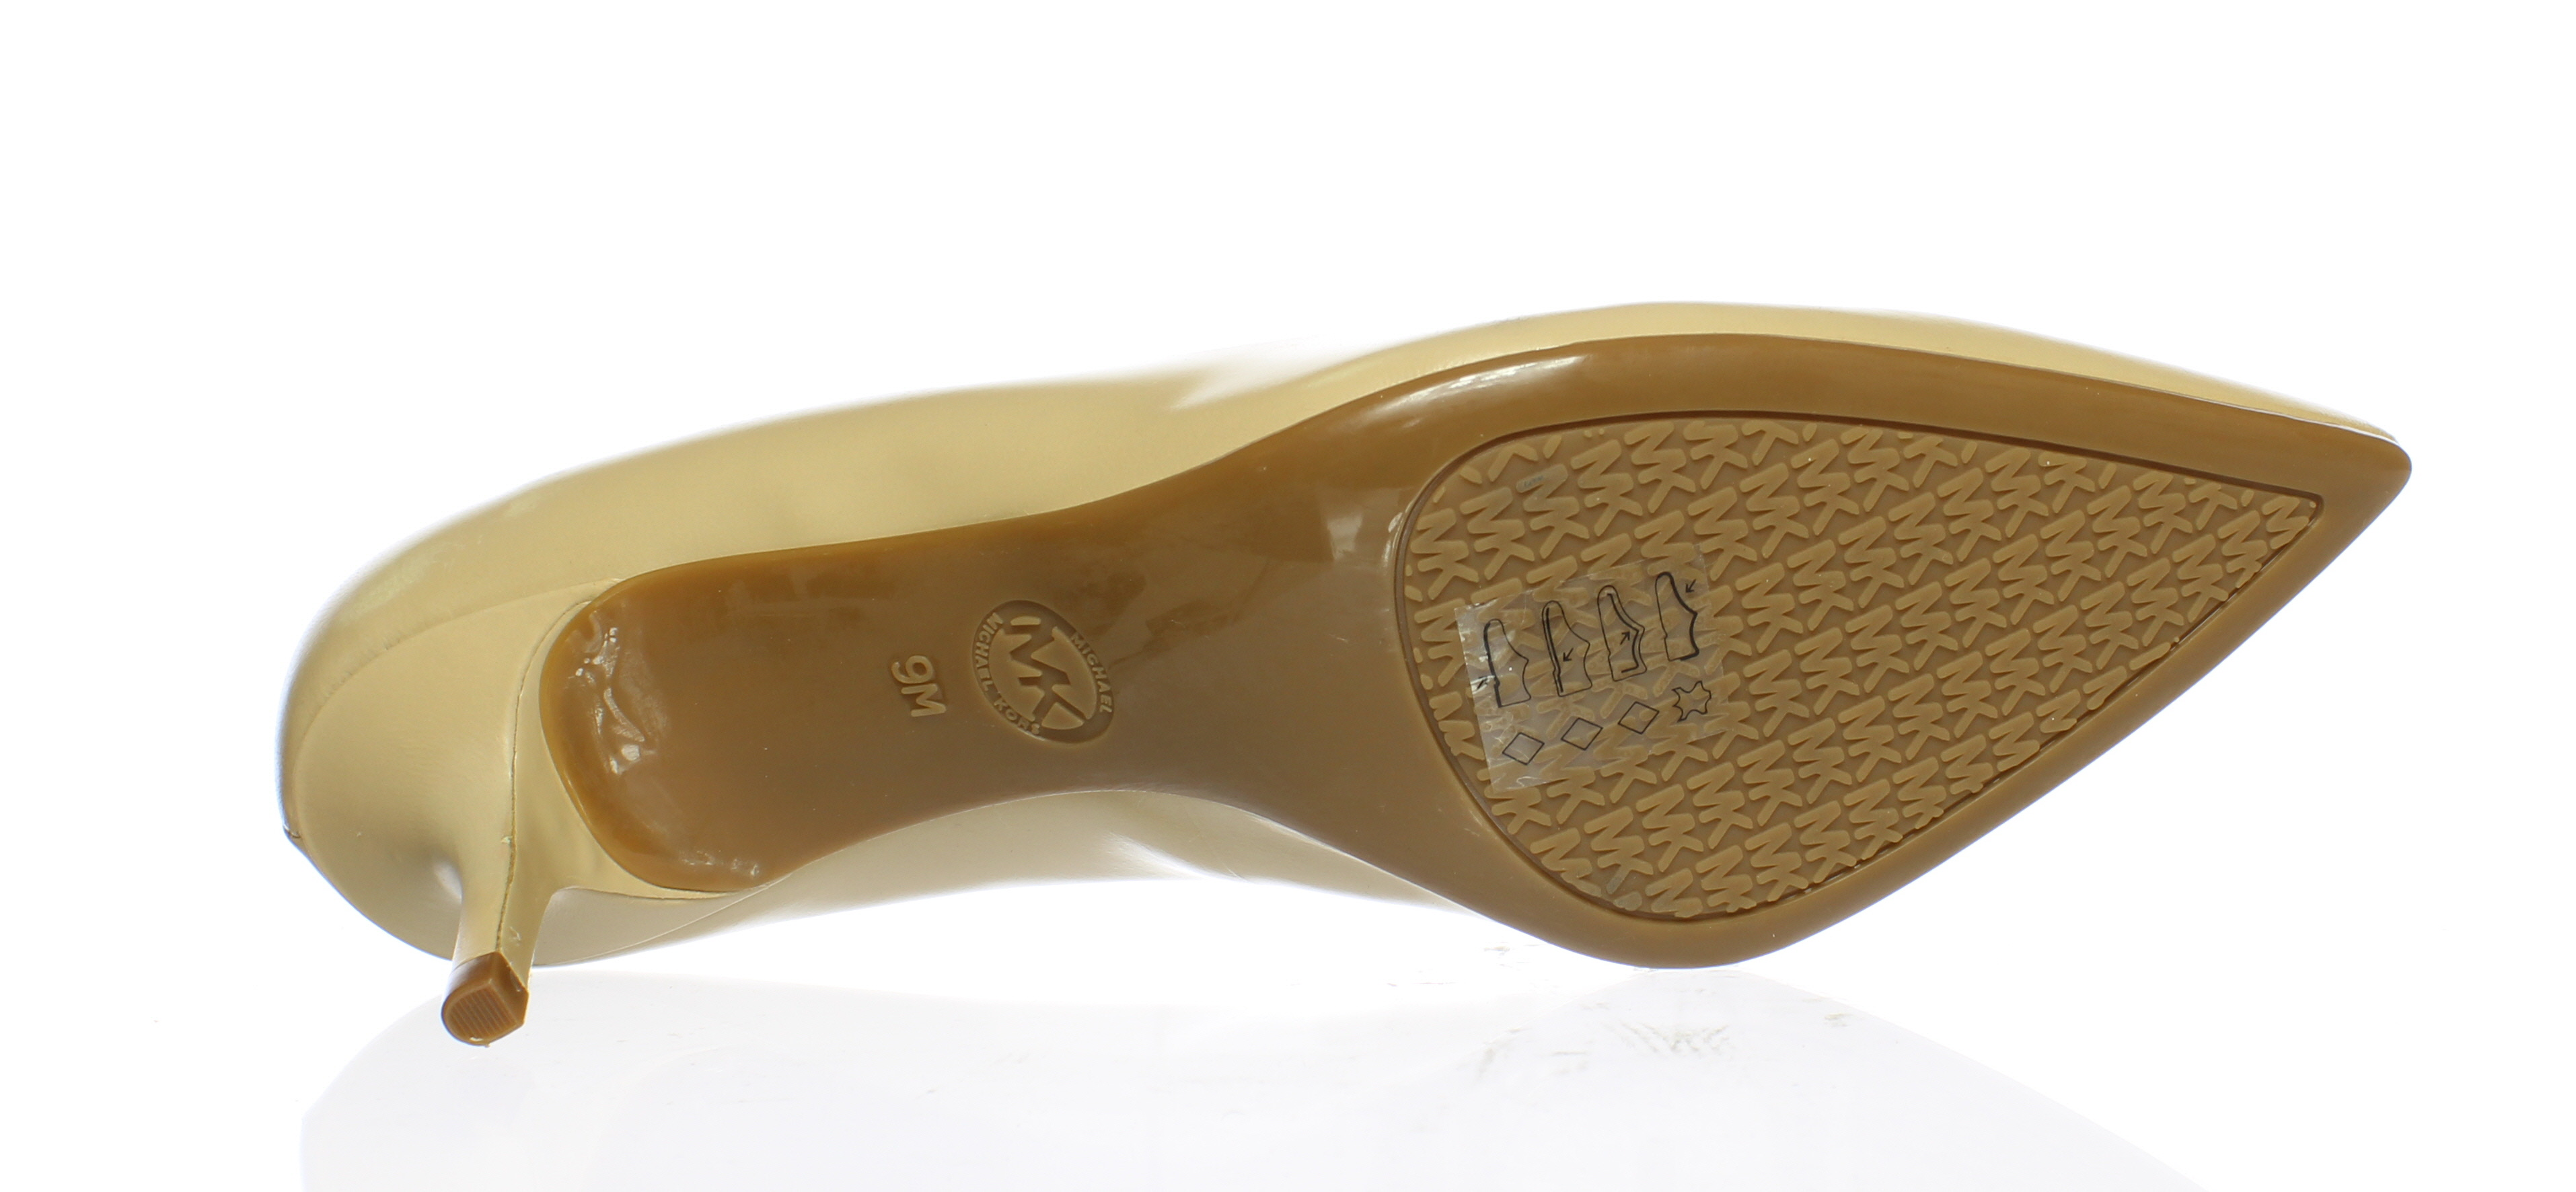 36ab4aa672c Michael Kors Womens 40S6mfmp1l-112 Nude Smooth Kid Pumps Size 9 ...